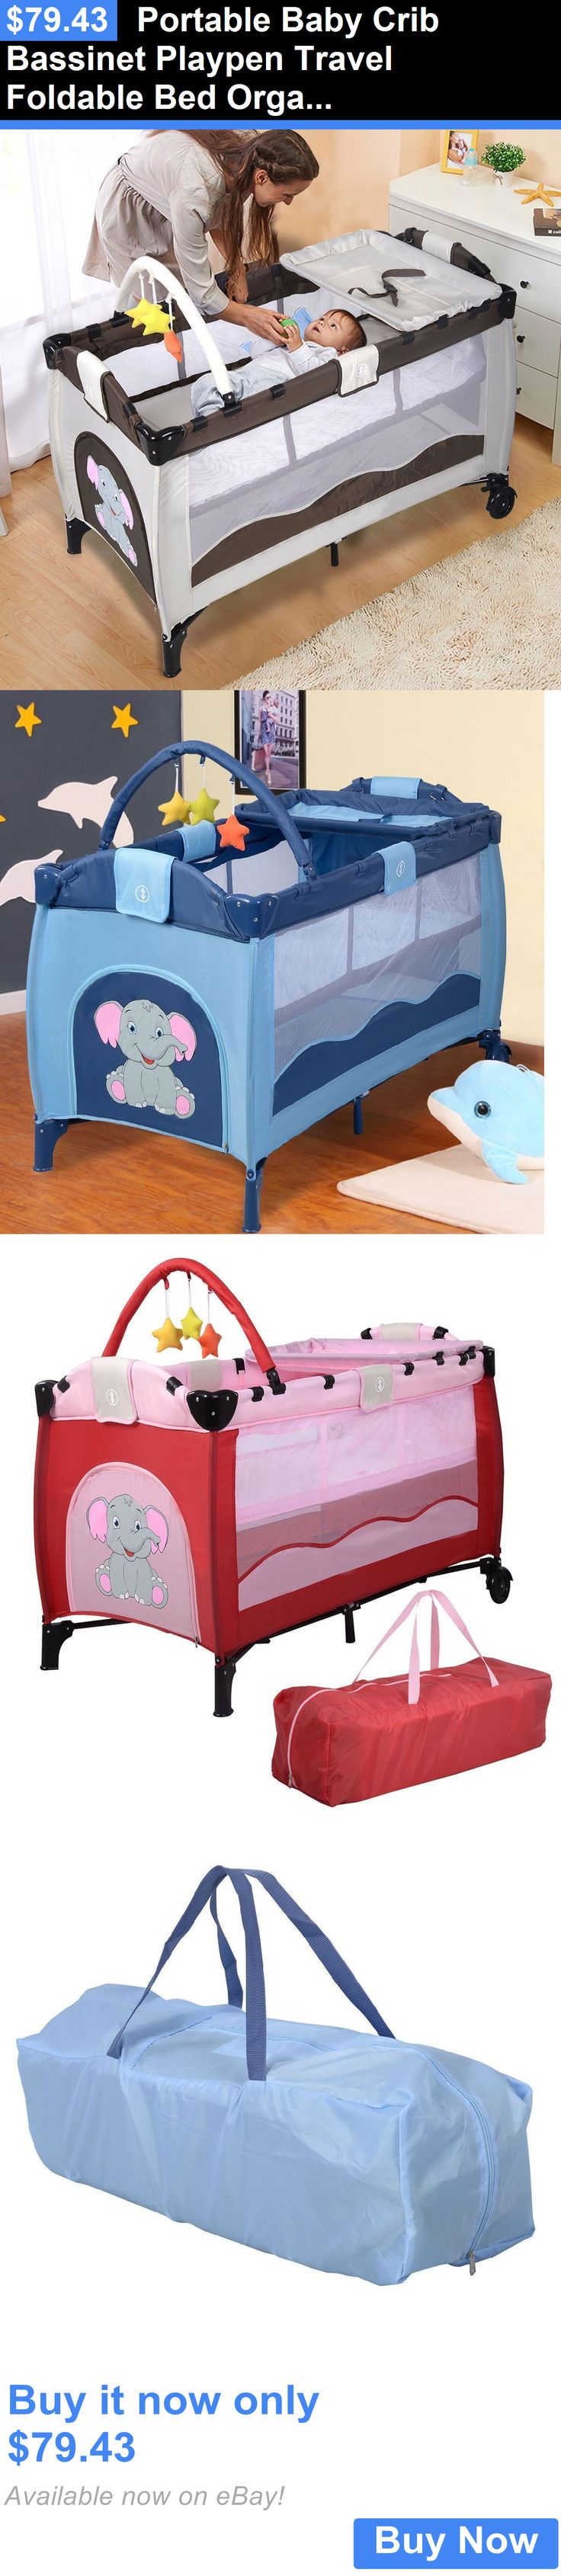 Baby cribs queens ny - Baby Nursery Portable Baby Crib Bassinet Playpen Travel Foldable Bed Organizer Convertible Buy It Now